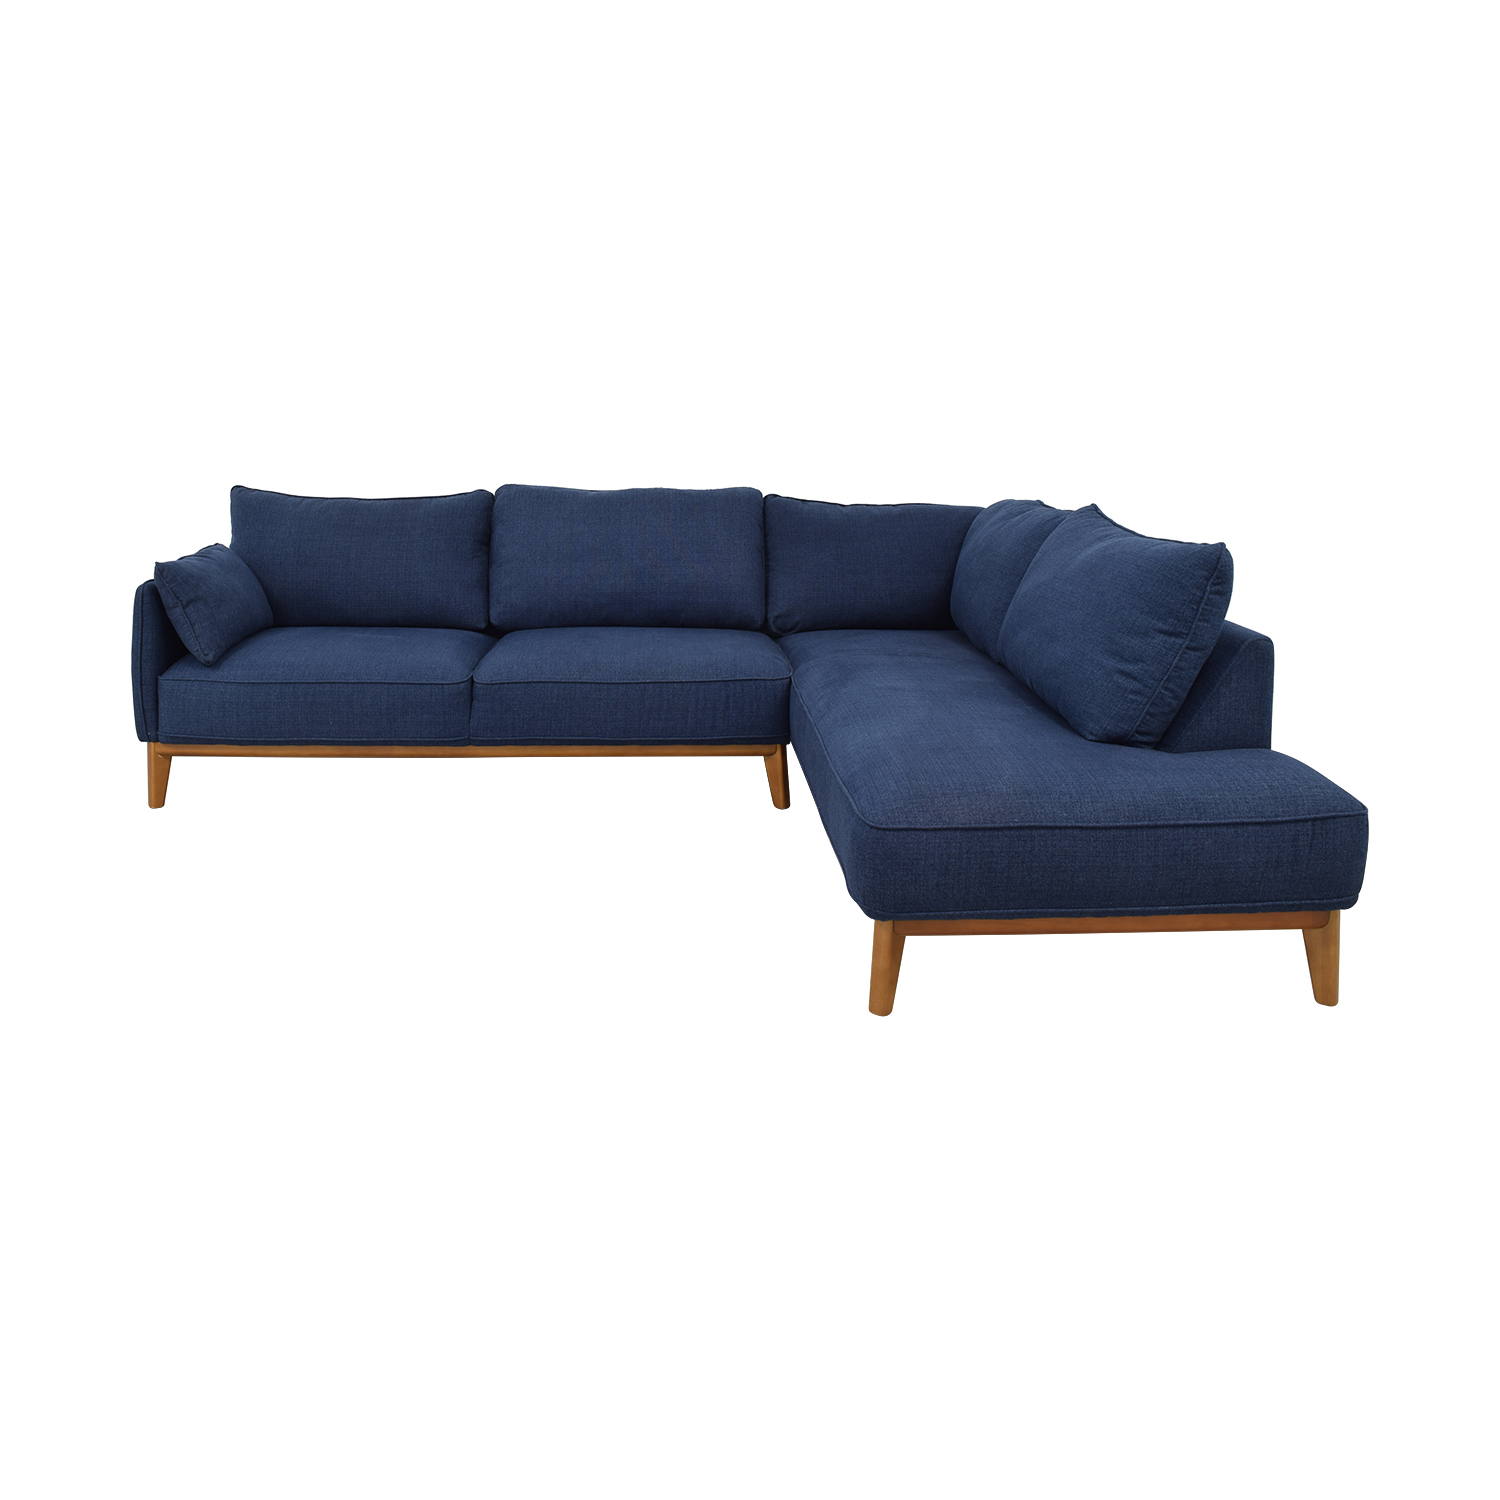 Macy's Macy's Jollene Blue Two-Piece Sectional price